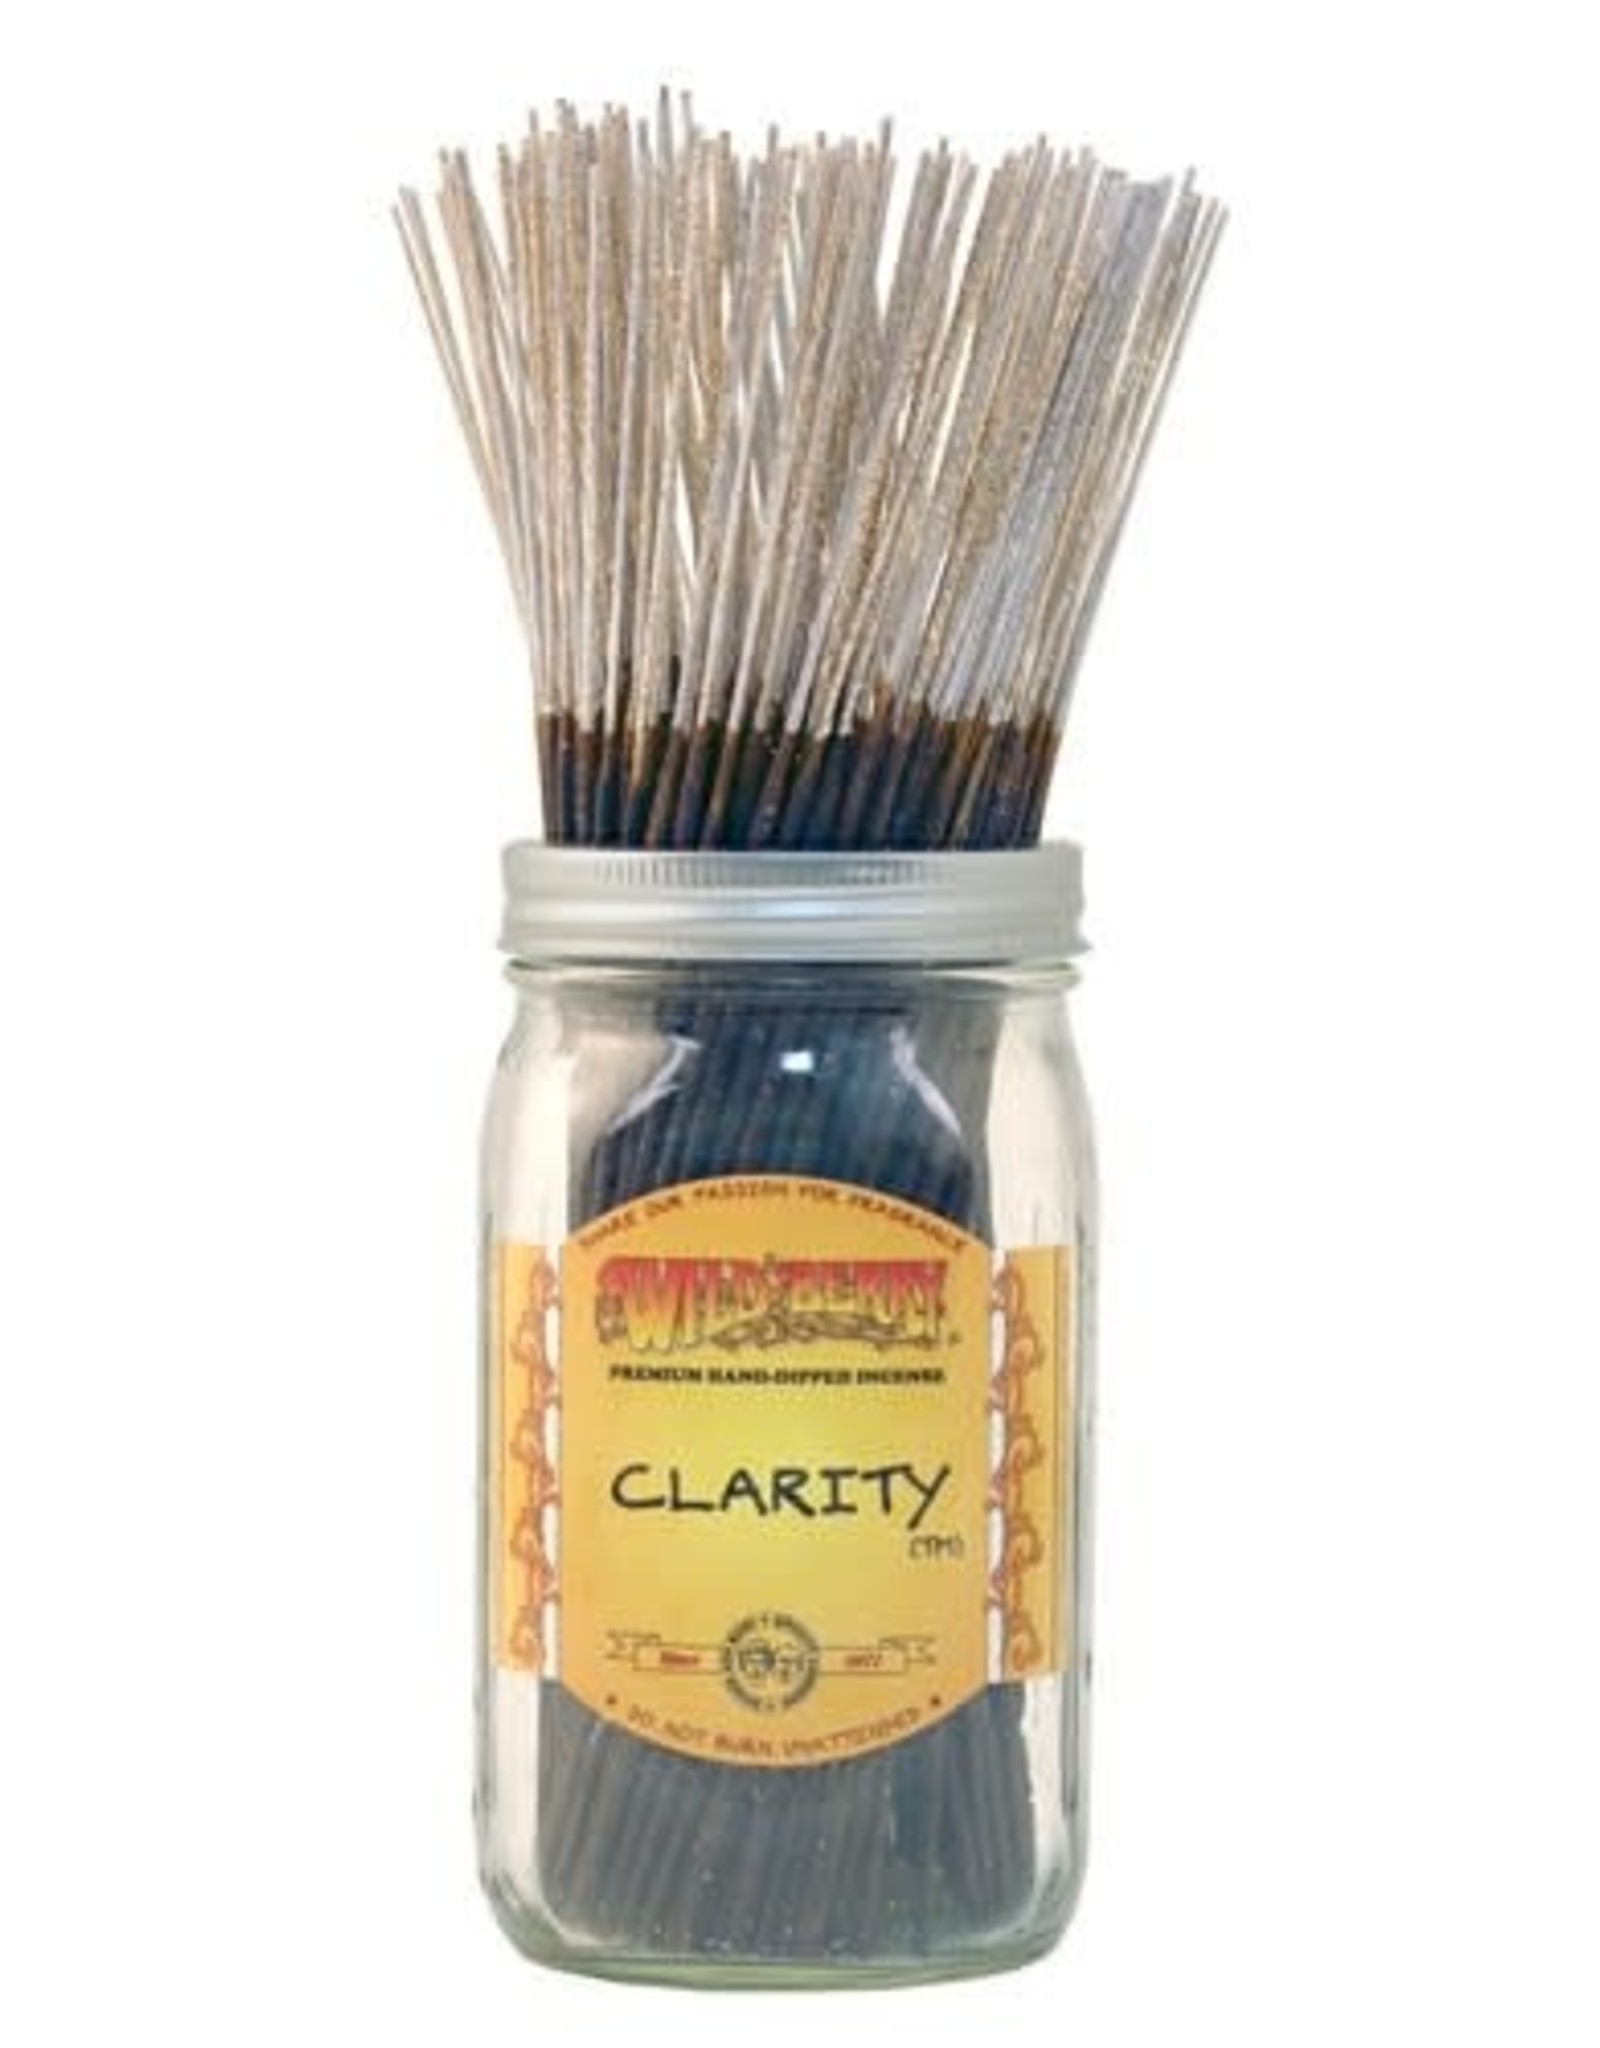 Clarity - Wildberry Incense